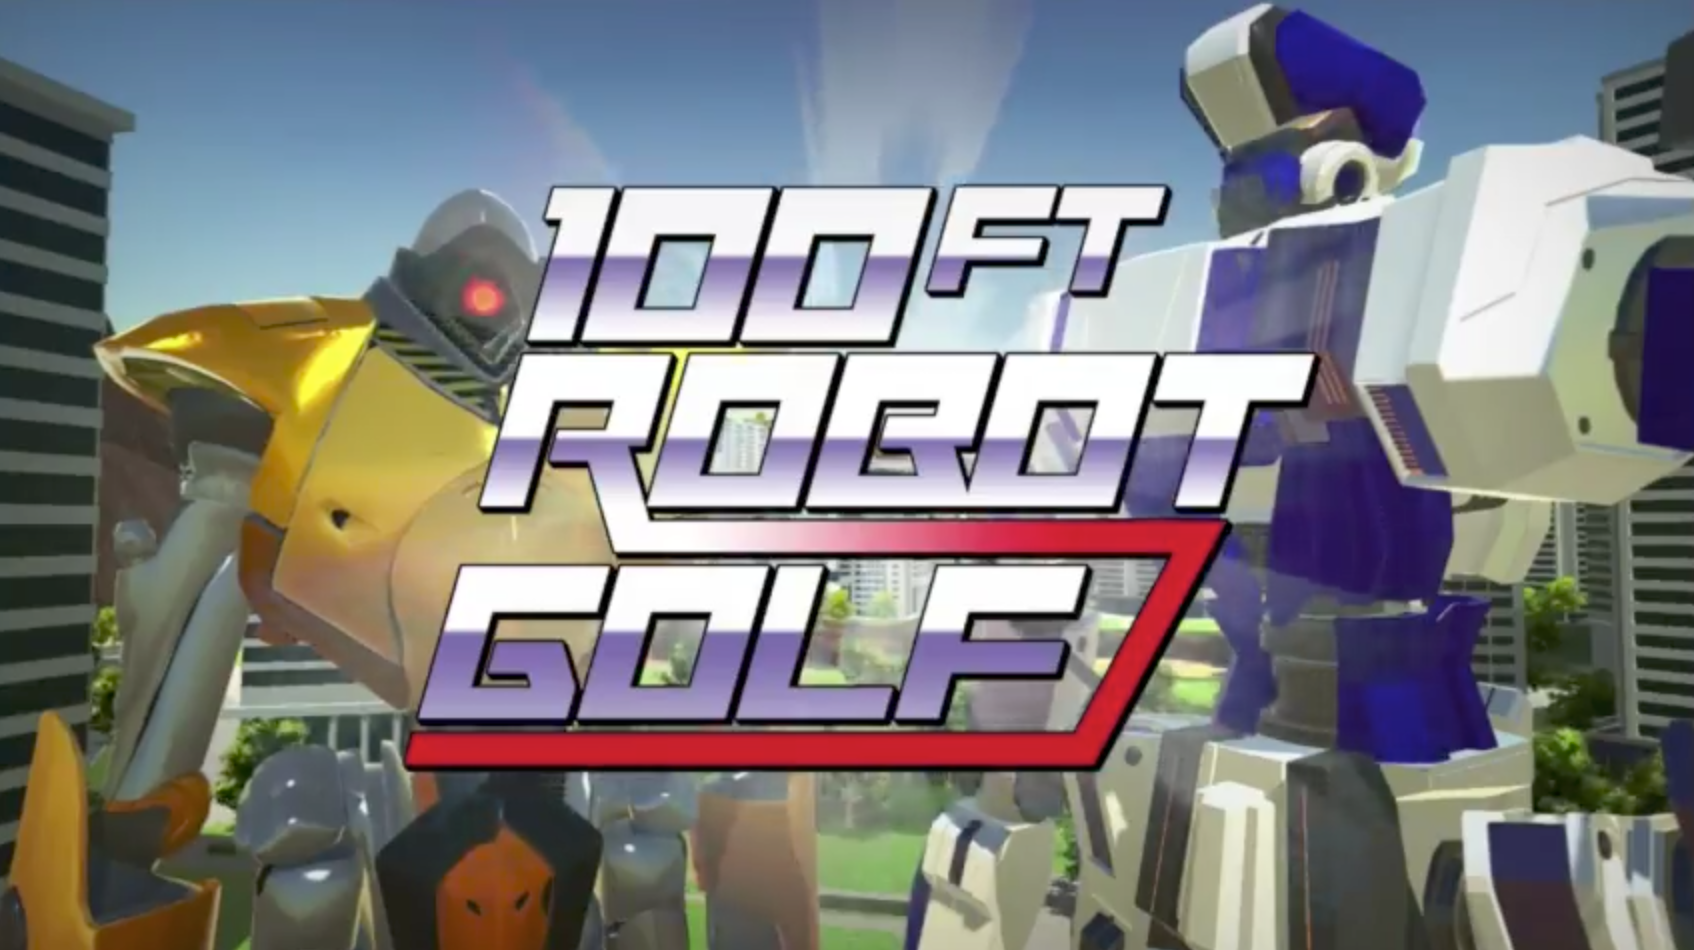 100 Foot Robot Golf. Nuff said.